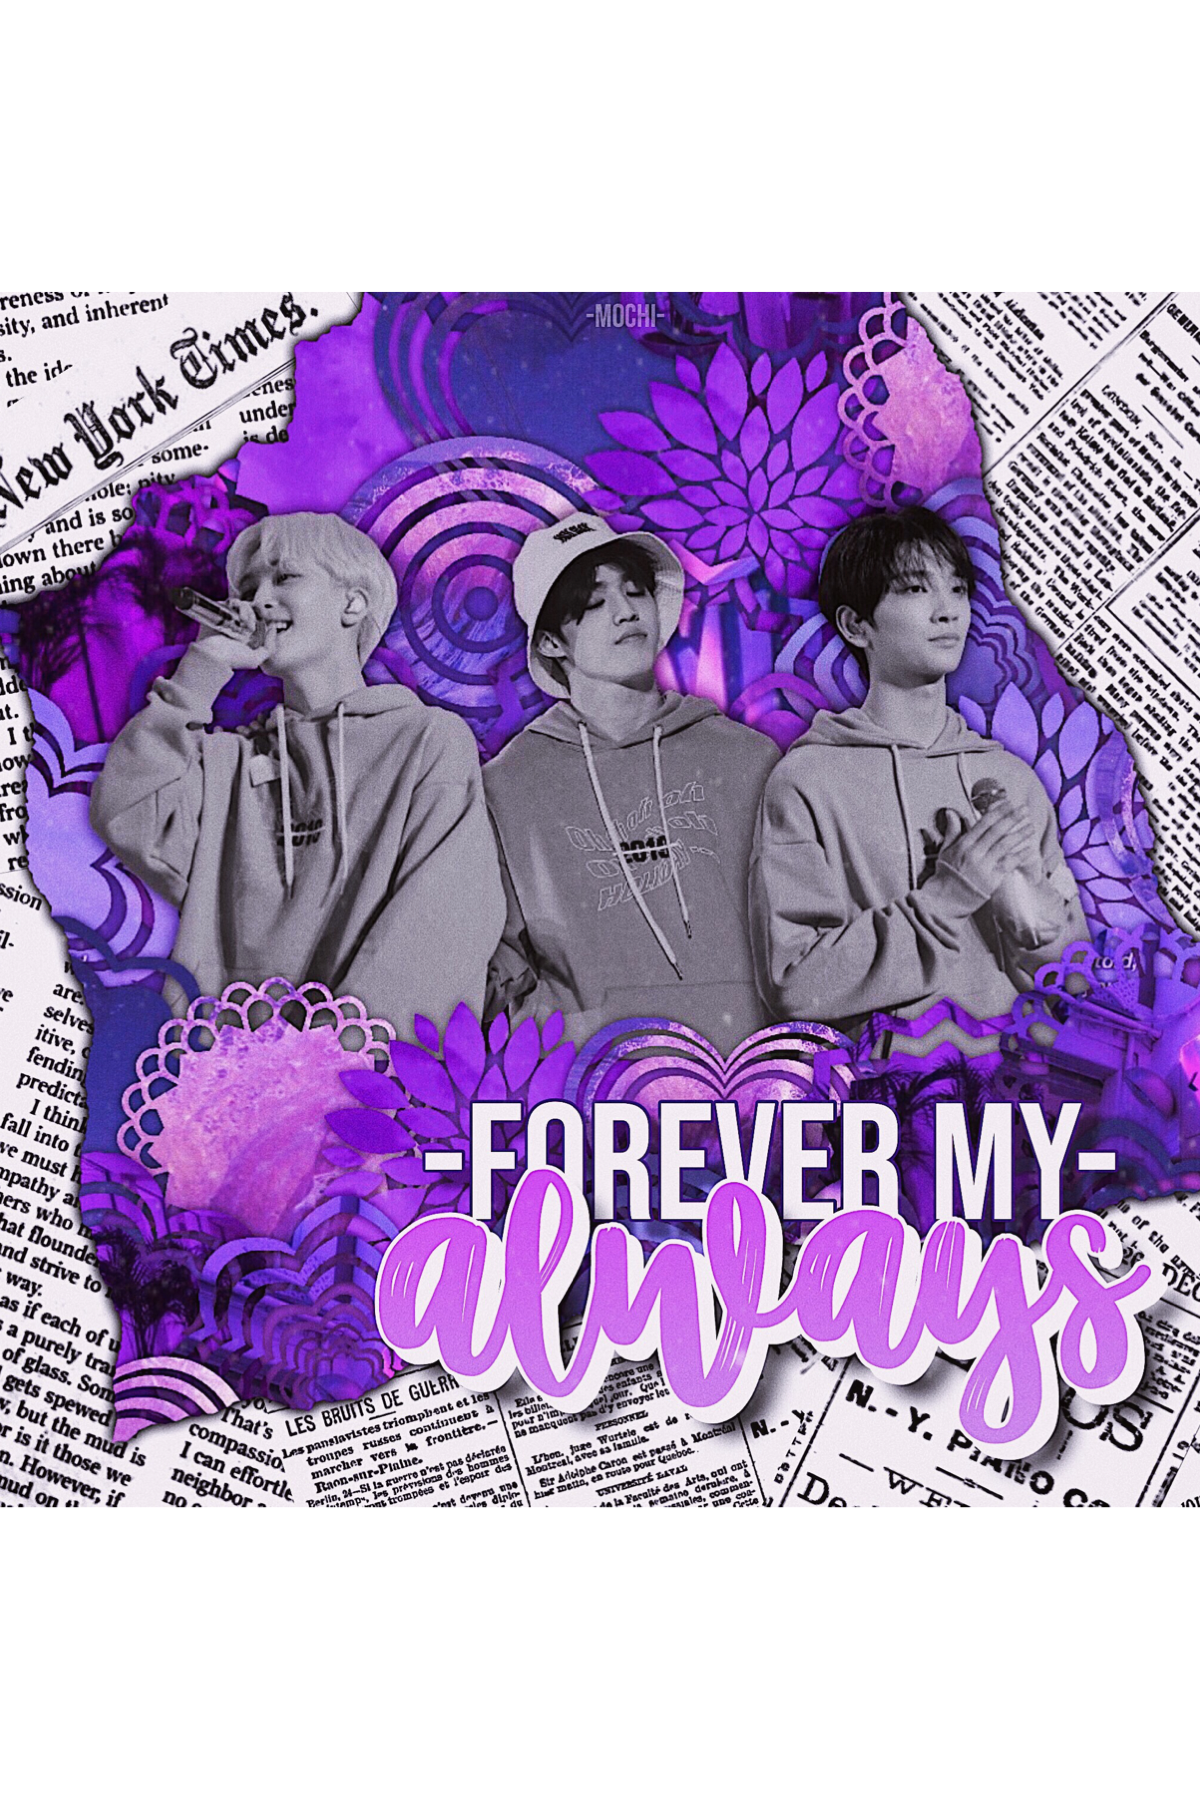 ☂️ tap ☂️ this is a sEvENtEEn edit that I made. I recently got into them haha~ hope you guys like it! I tried something a little new with the newspapers... thoughts?